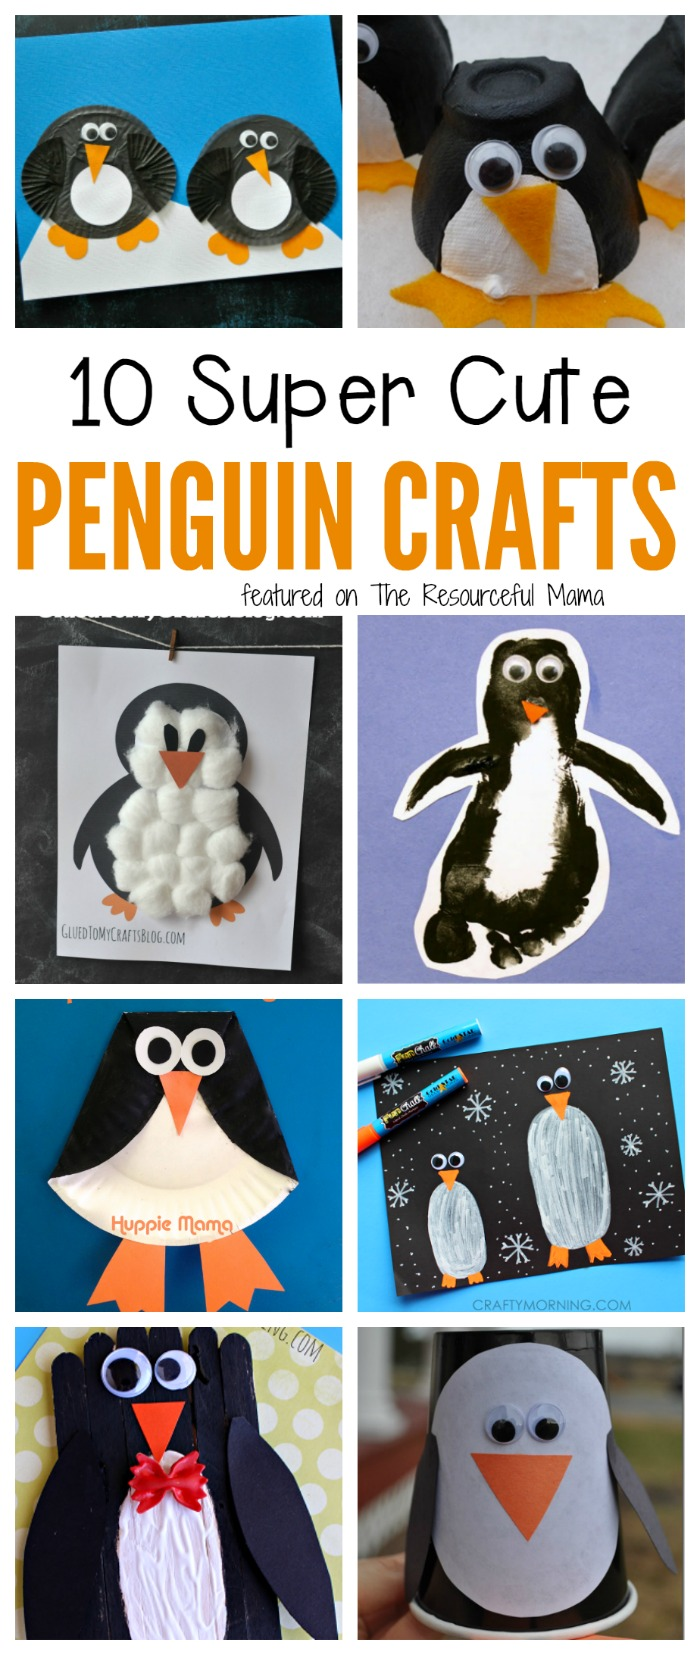 Kids will love making these penguin crafts make from paper rolls, craft sticks, cupcake liners, and more fun craft supplies.